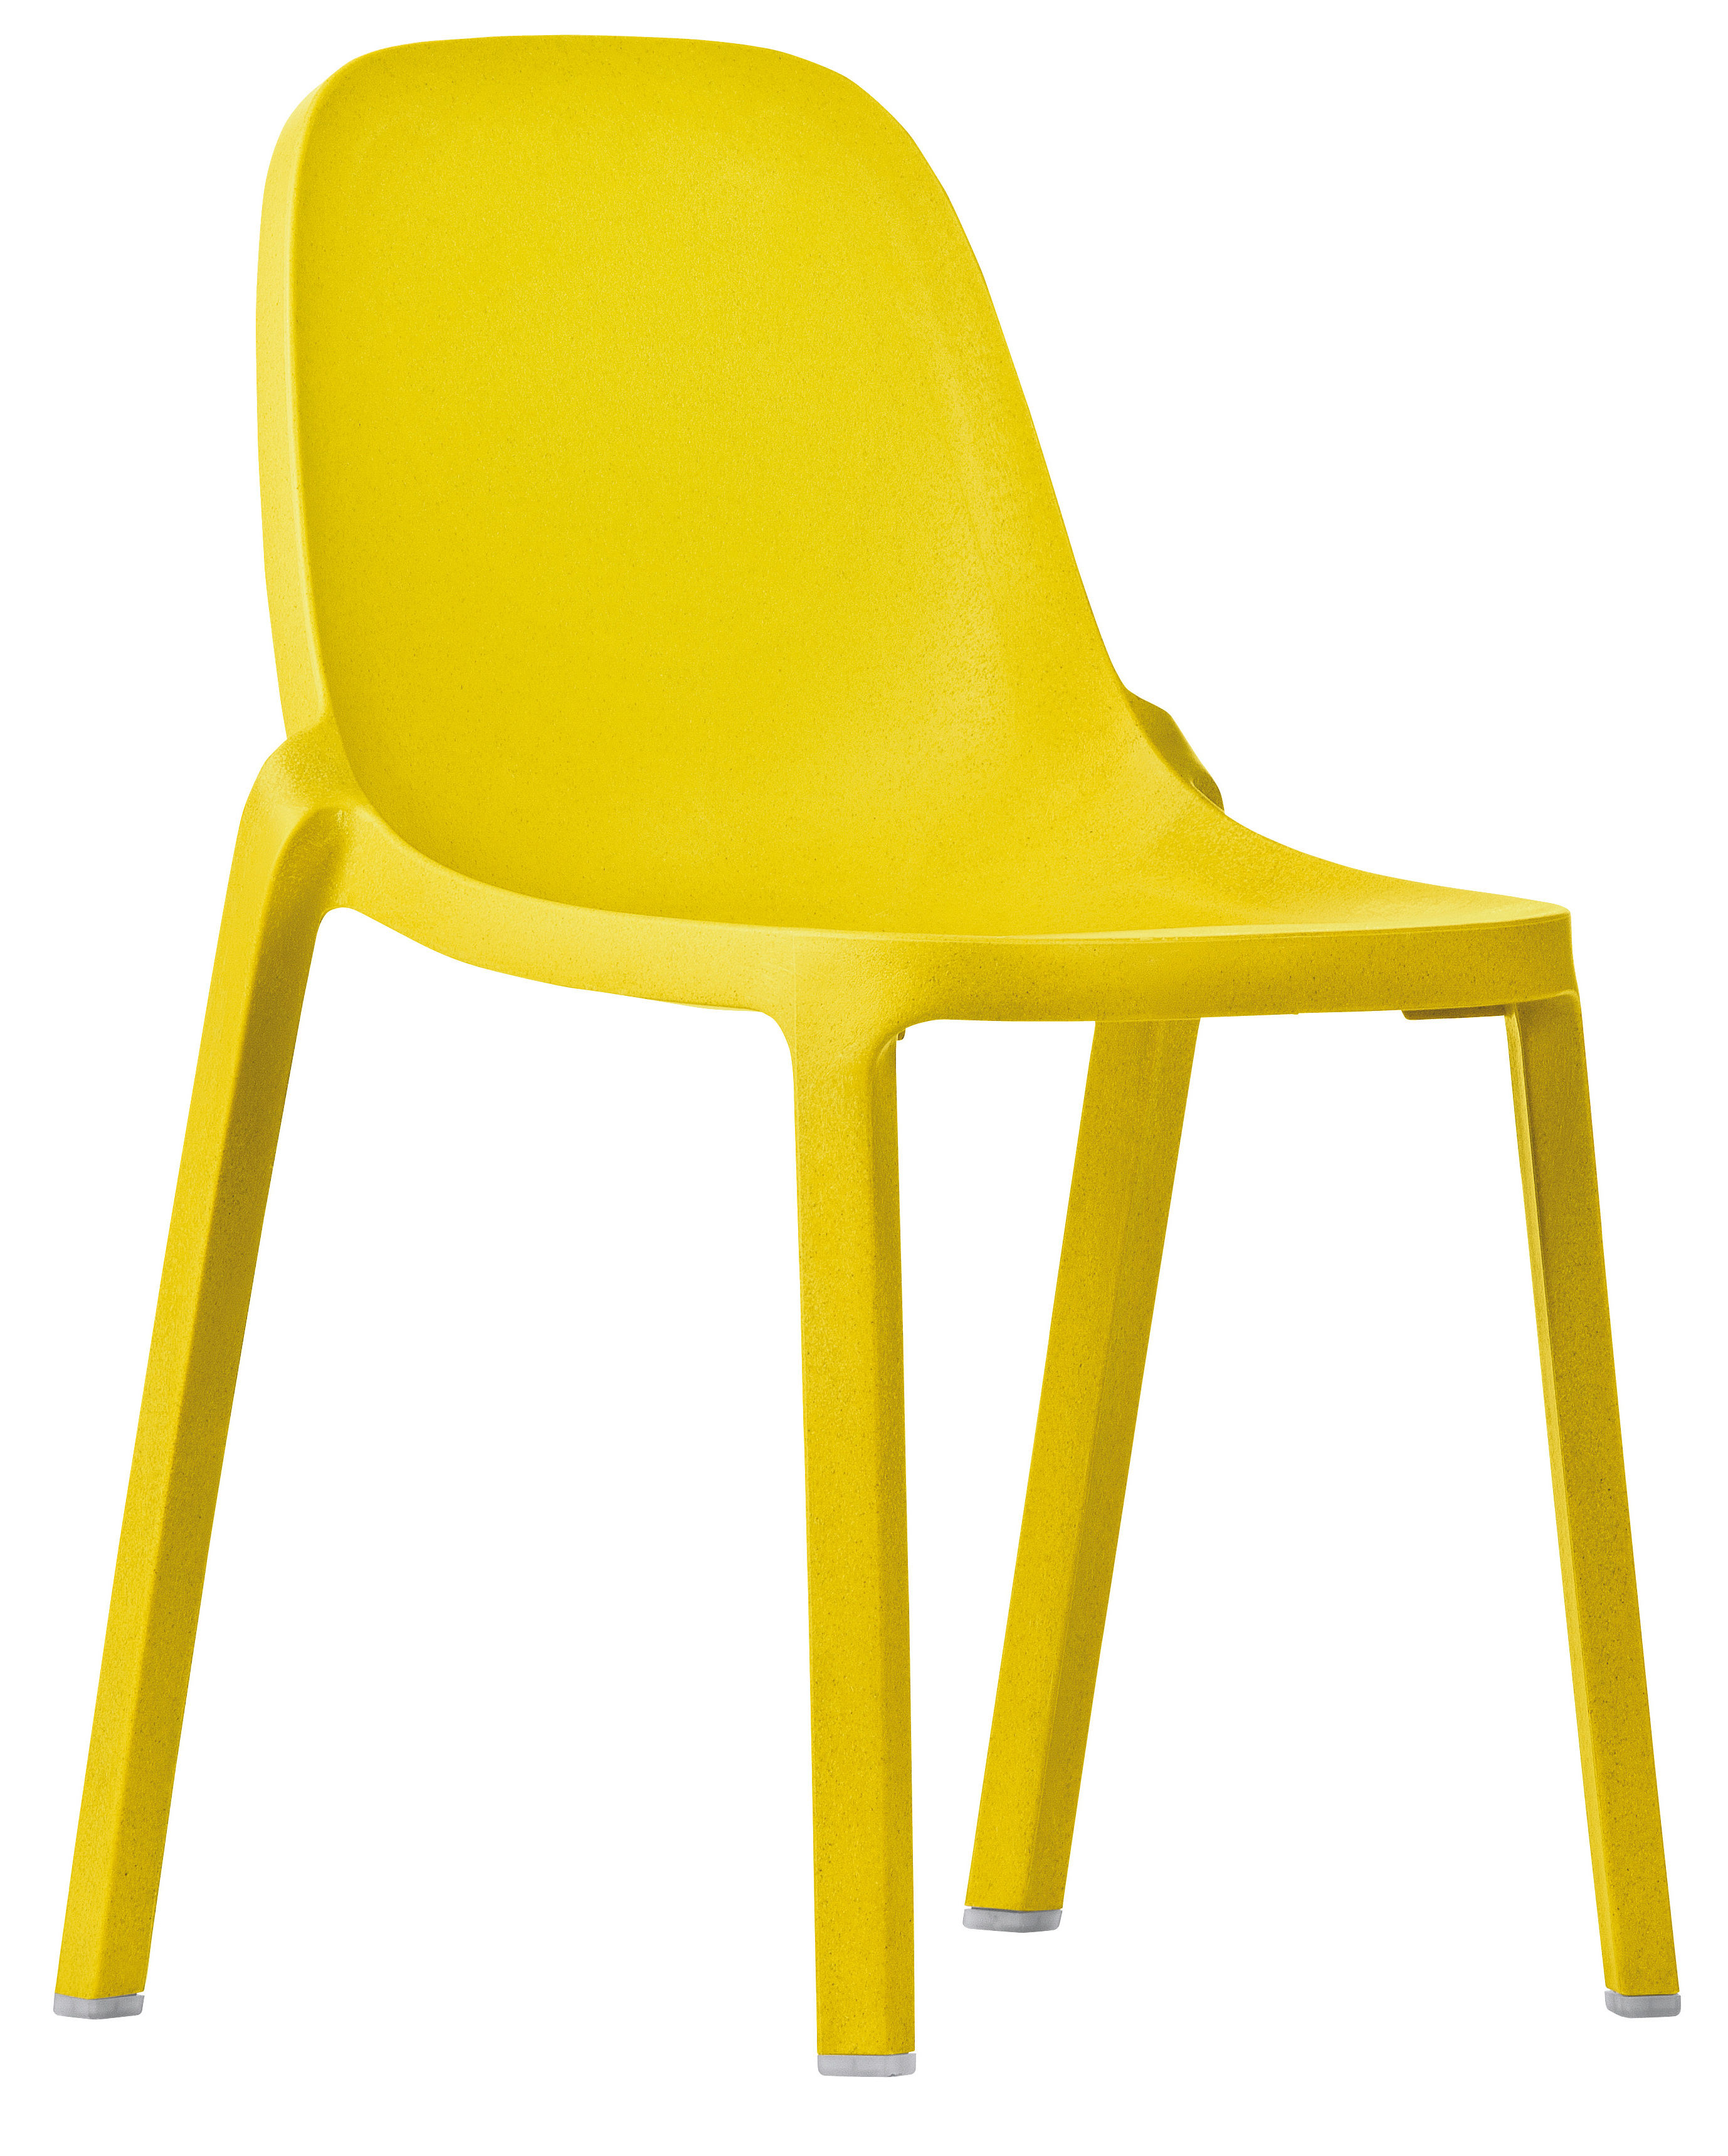 Furniture - Chairs - Broom Stackable chair - Recycled plastic by Emeco - Yellow - Recycled composite material